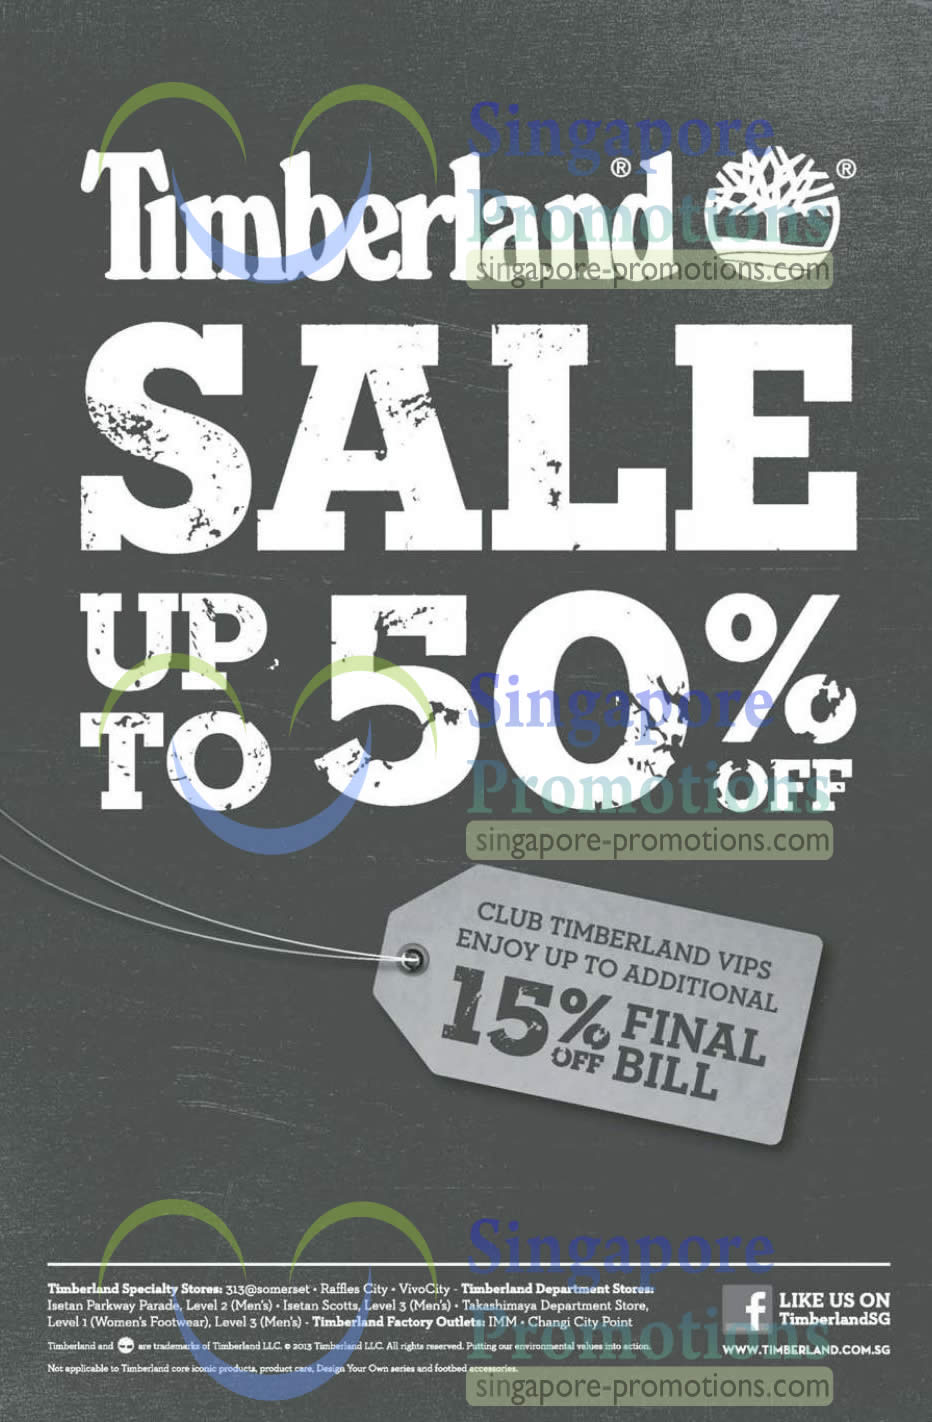 Timberland Mid Year Sale Up To 50% Off Promo 23 May – 7 Jul 2013